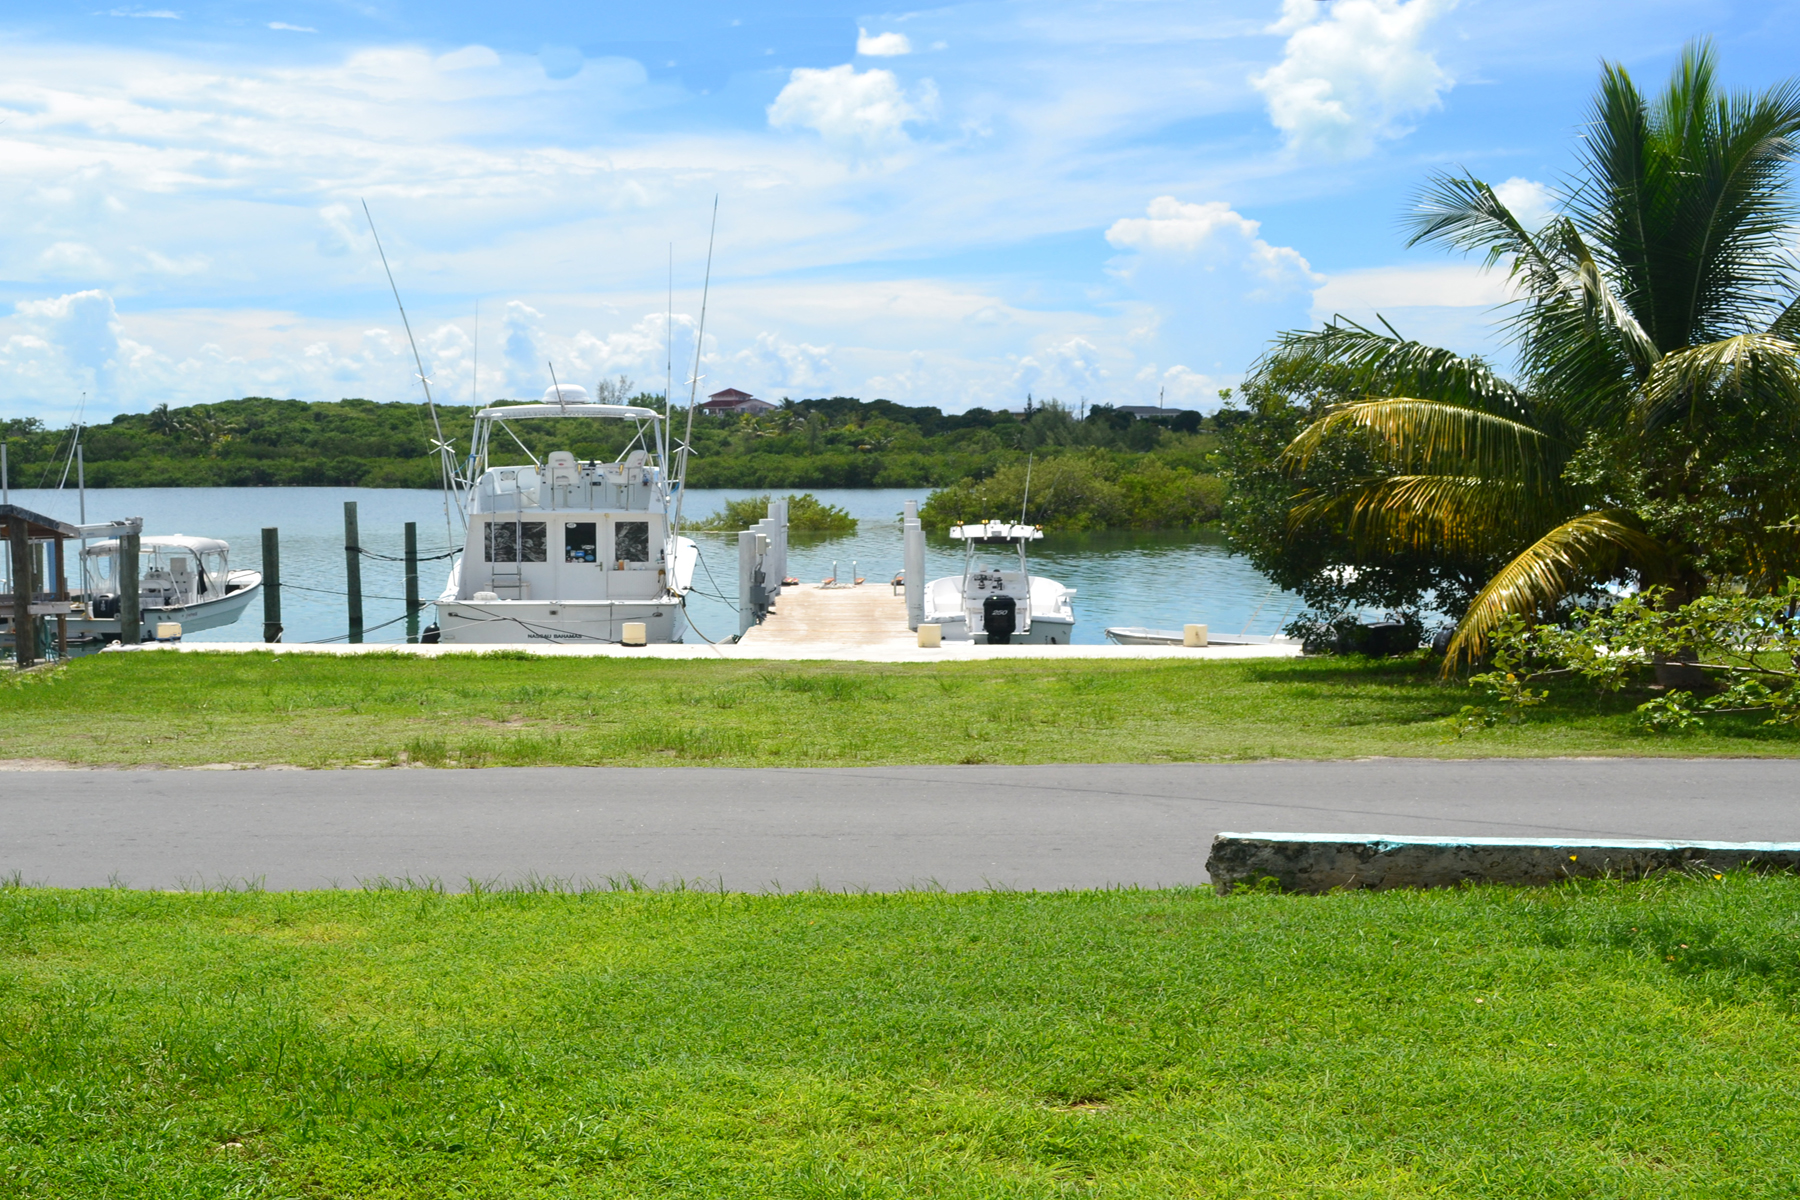 Terreno por un Venta en Harbourside Dock Property with Vacant Lot Spanish Wells, Eleuthera Bahamas